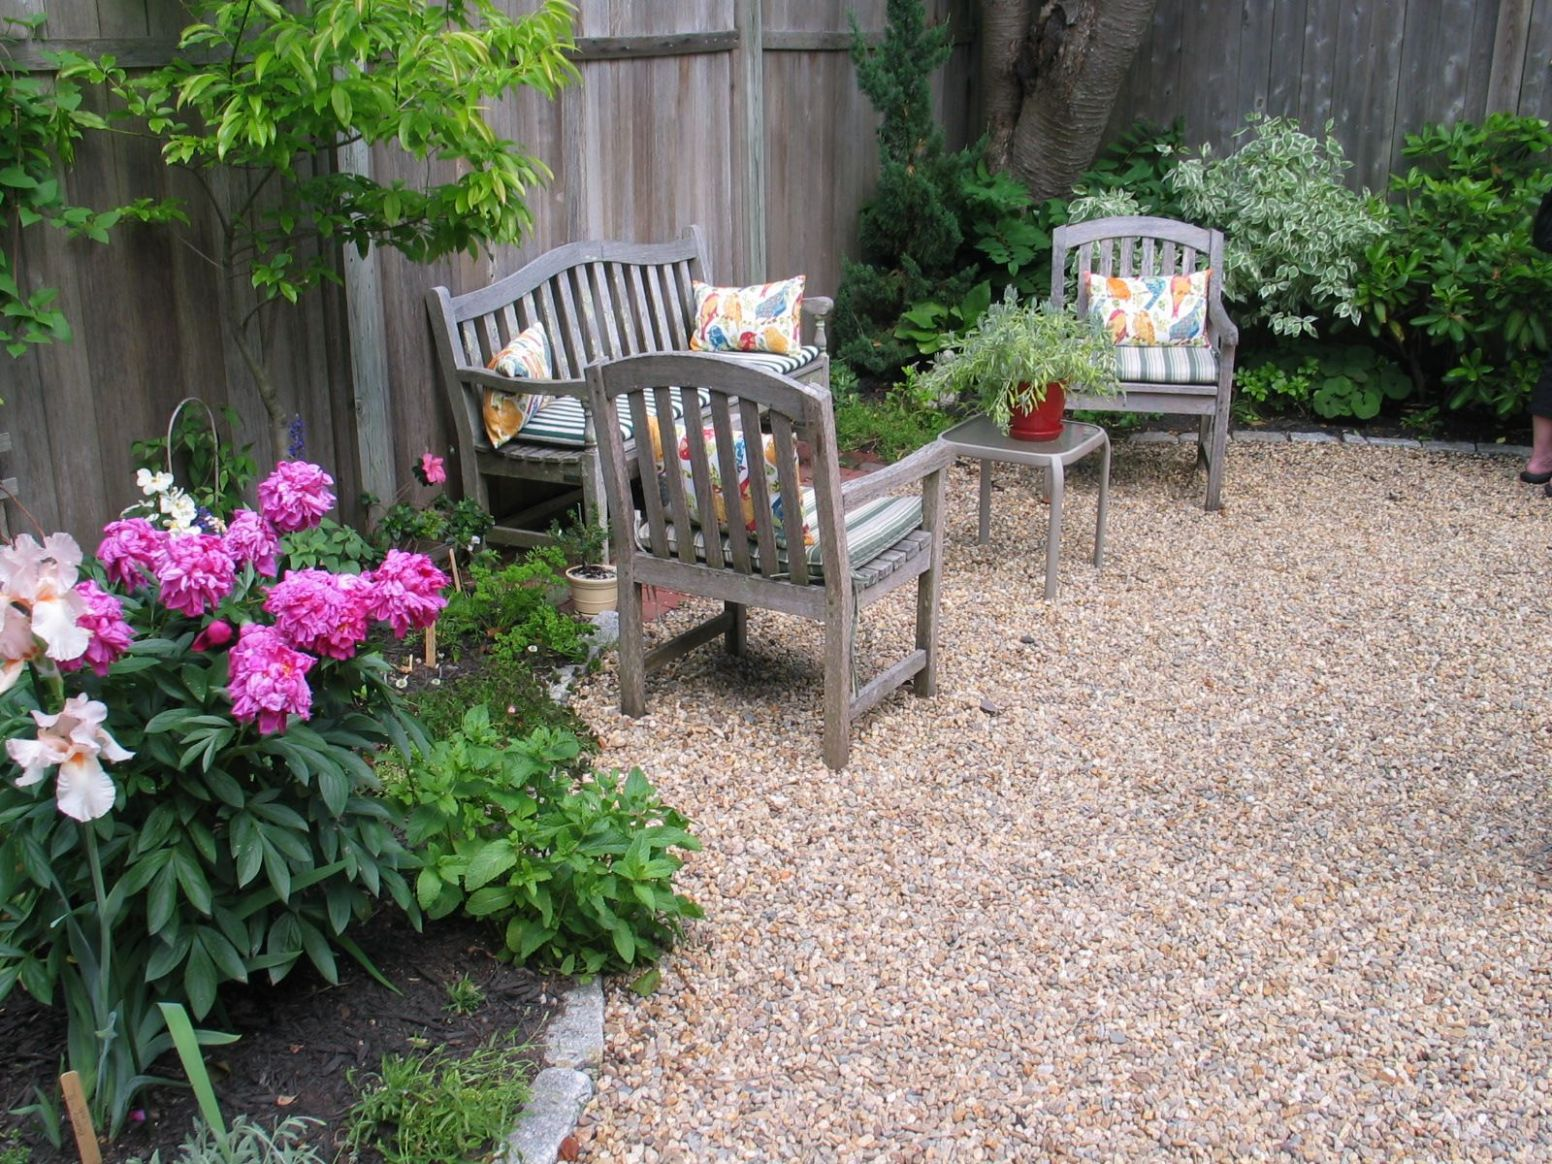 A Gardener Eliminates the Lawn (With images) | Gravel landscaping ..